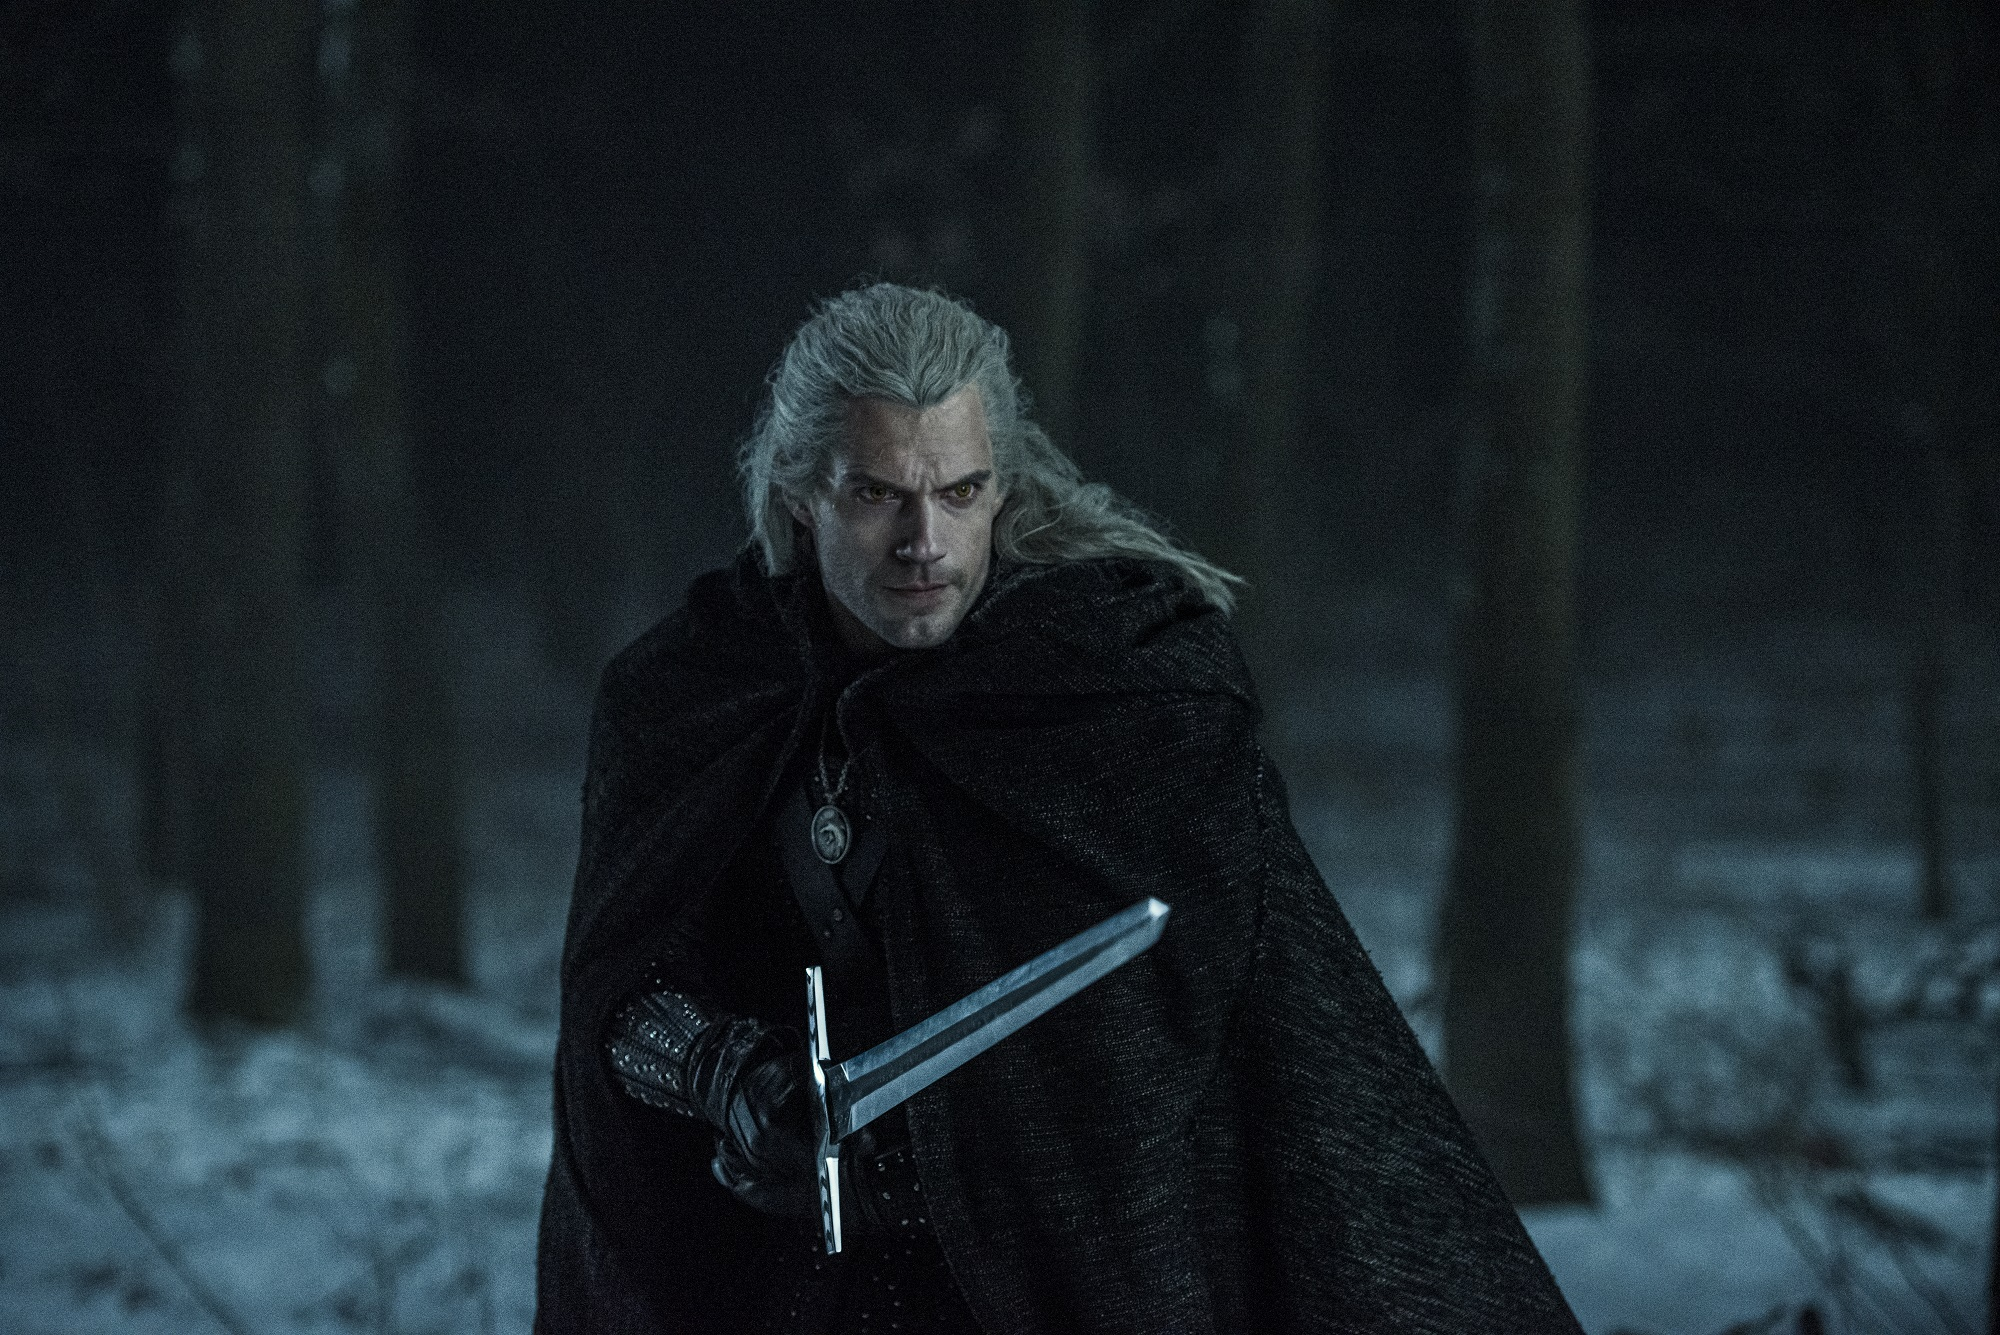 Henry Cavill breaks down his portrayal of Geralt of Rivia in Netflix's <i>The Witcher</i>